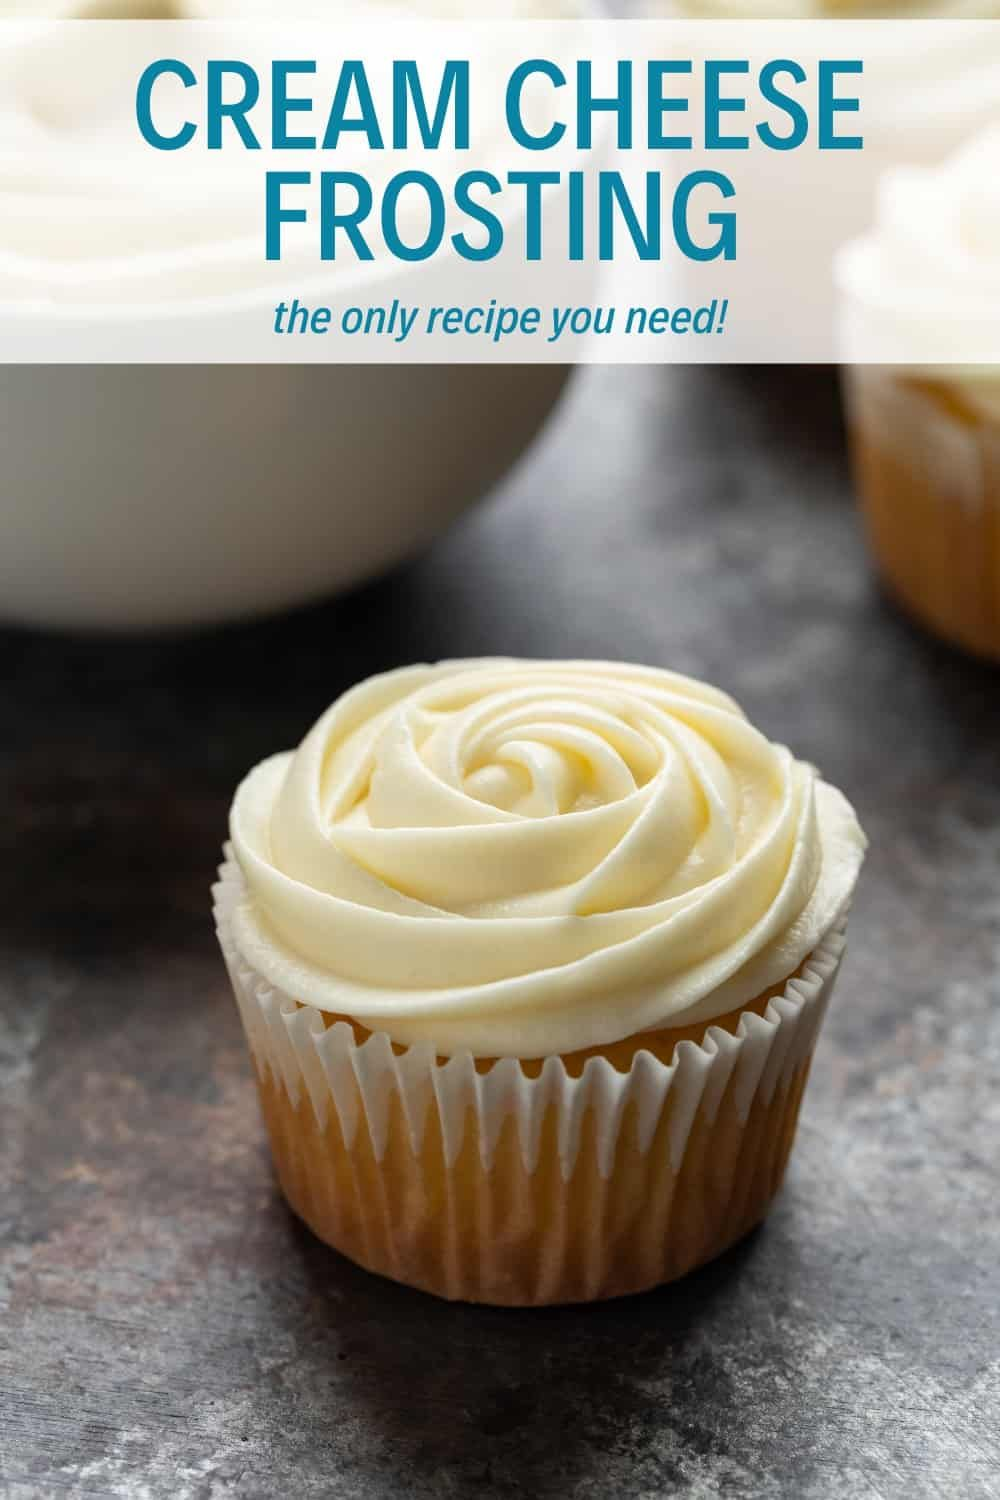 Cream Cheese Frosting This silky Cream Cheese Frosting is a basic recipe that can be used in a variety of ways. It's not too sweet and has a ton of tangy cream cheese flavor!